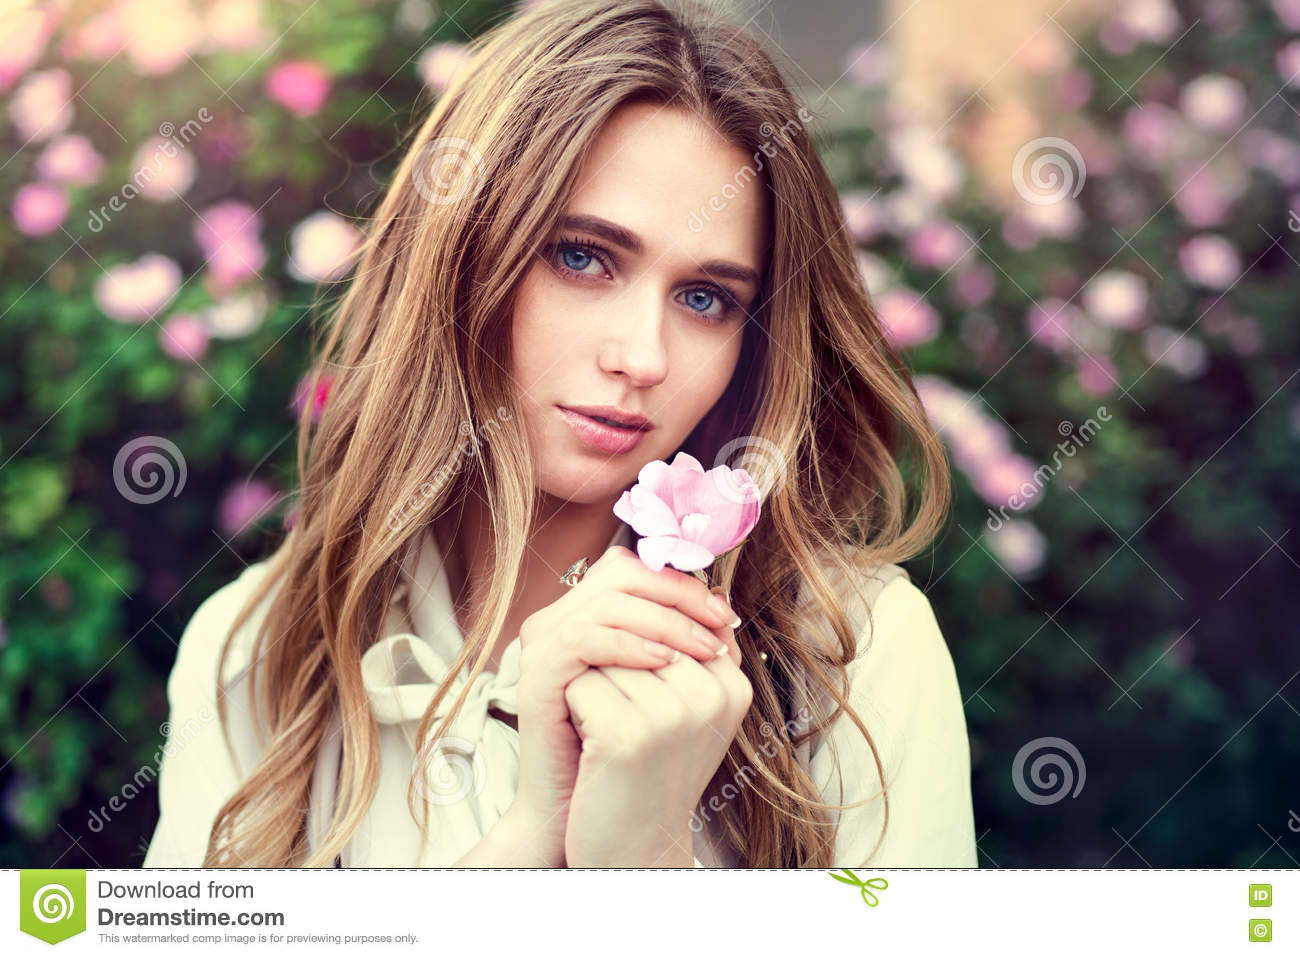 Beautiful cute girl holding rose flower in hands close to her face at sunset time